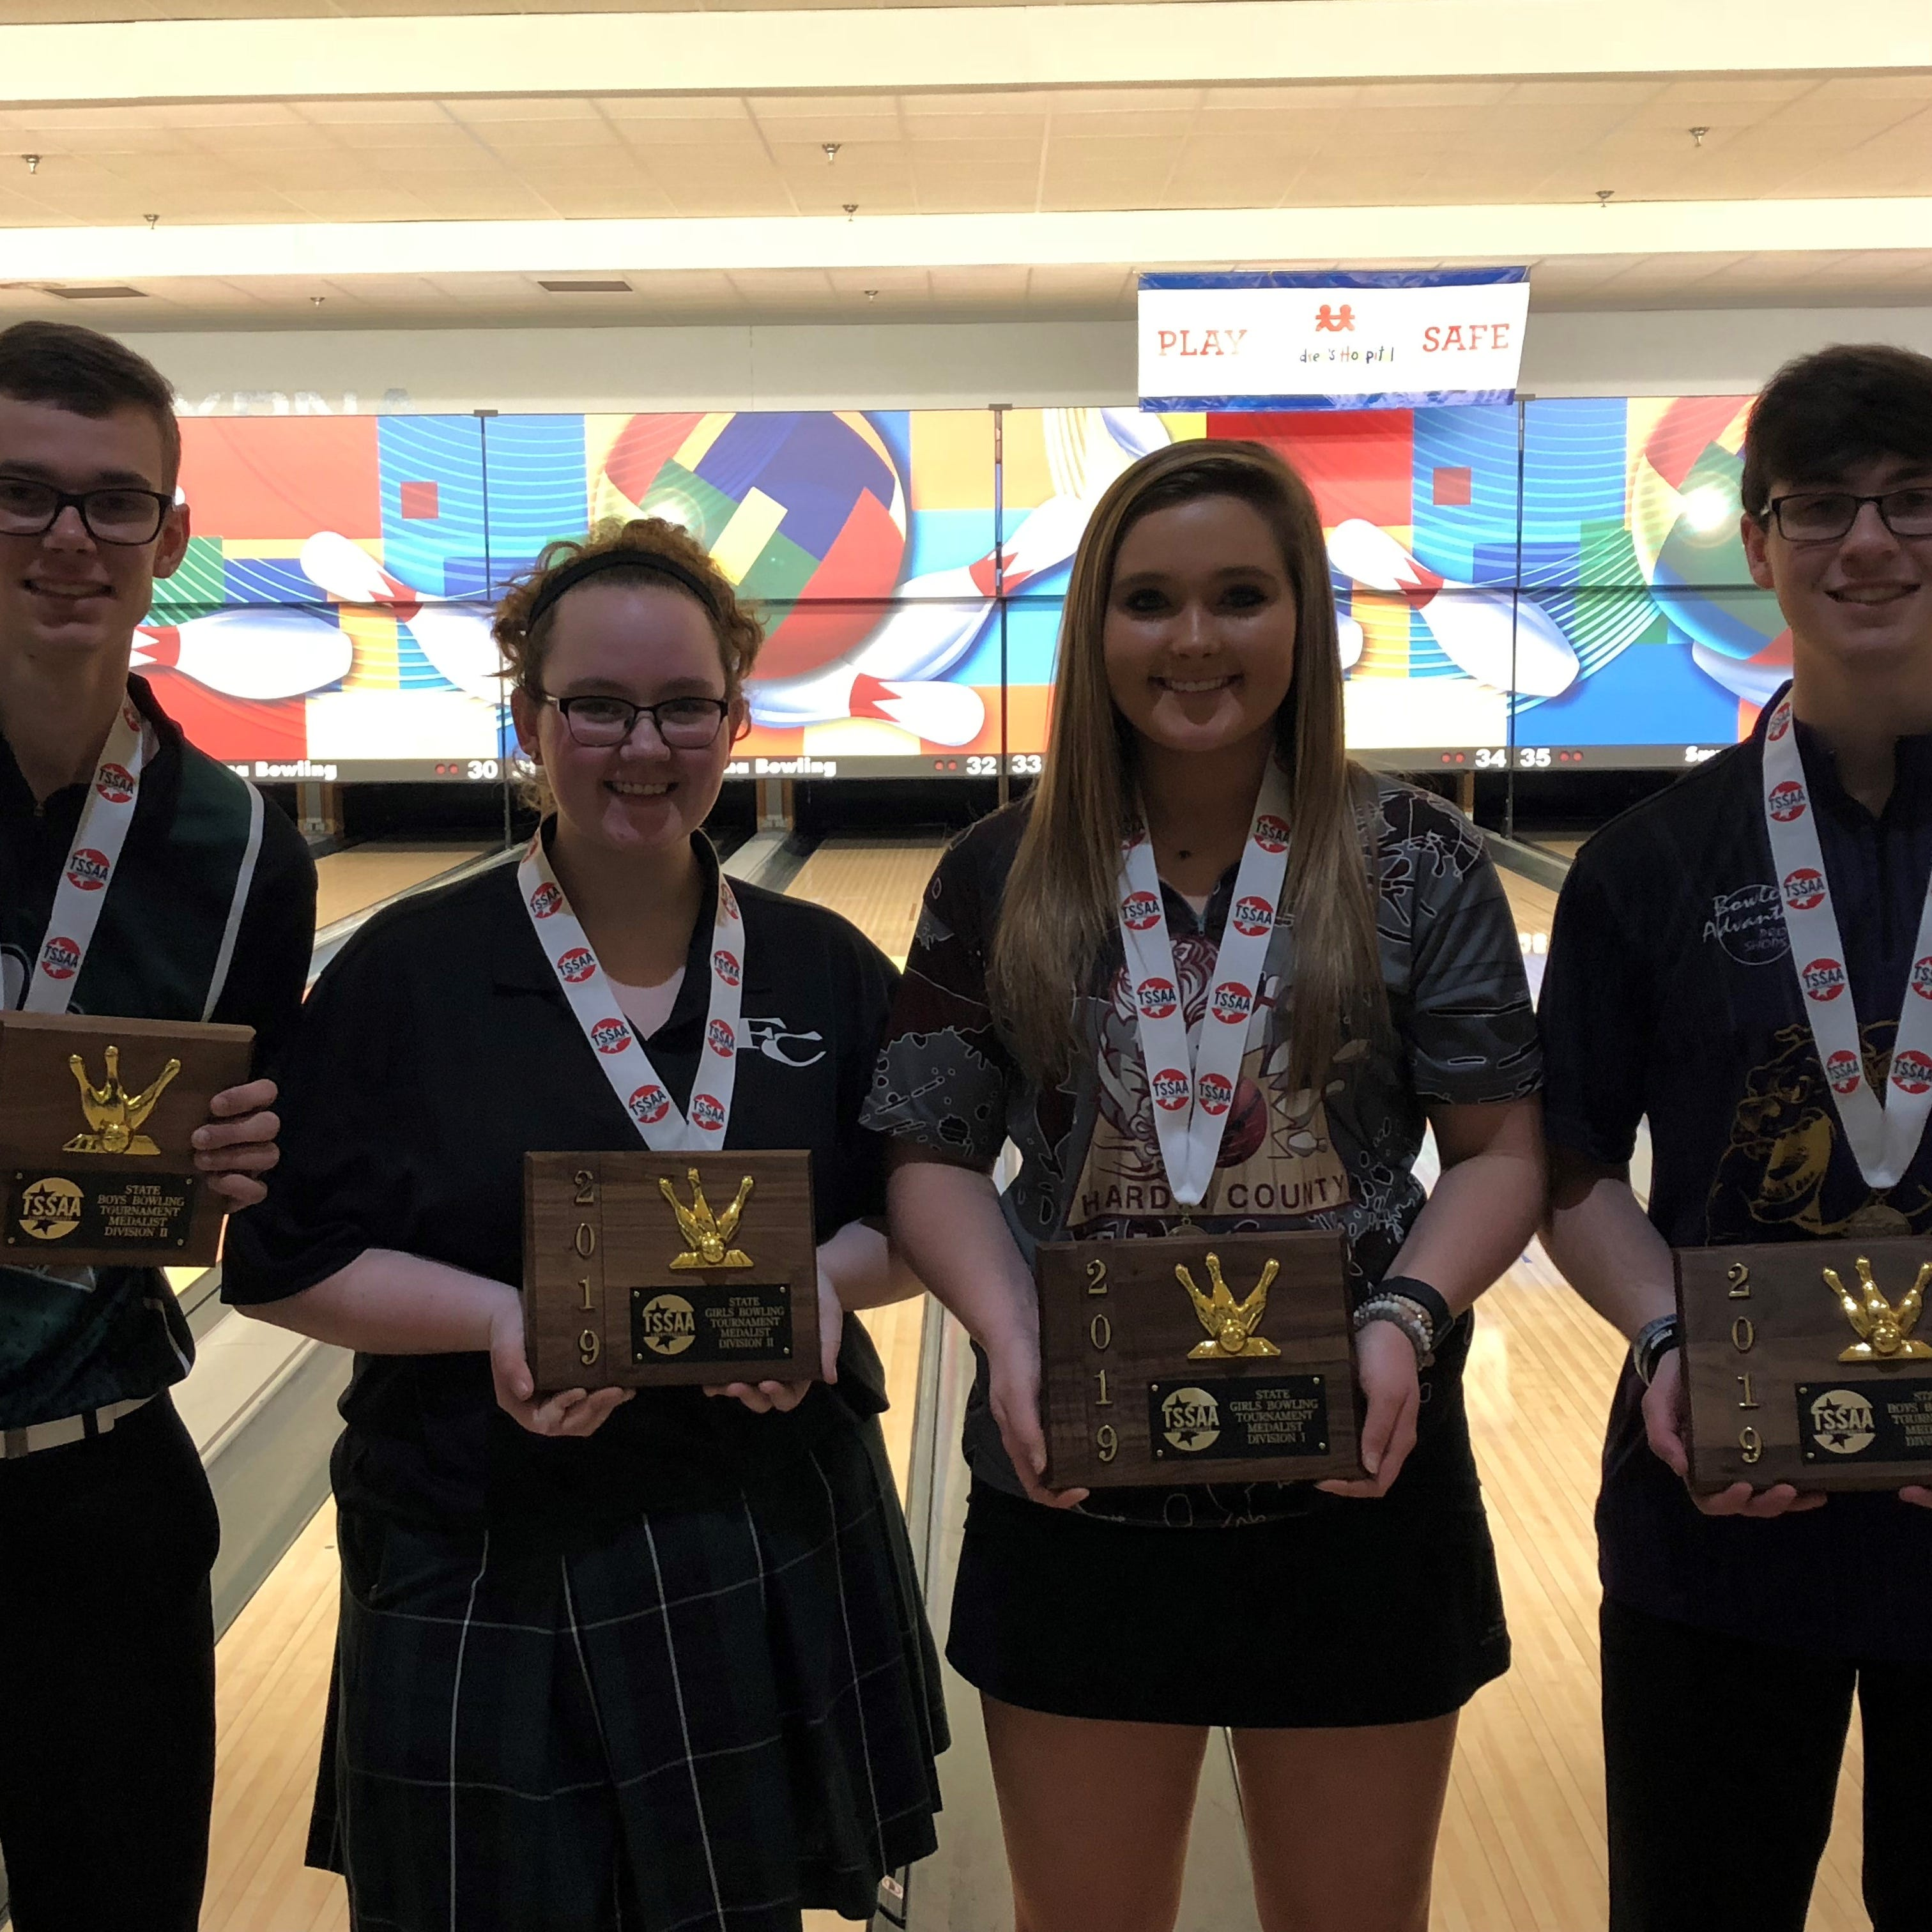 The four TSSAA state individual bowling state champions are (l-r) Friendship Christian's Dalton Karstens and Olivia Van Hooser, Hardin County's Faith Welch and Smyrna's Josh Meeke (DI).